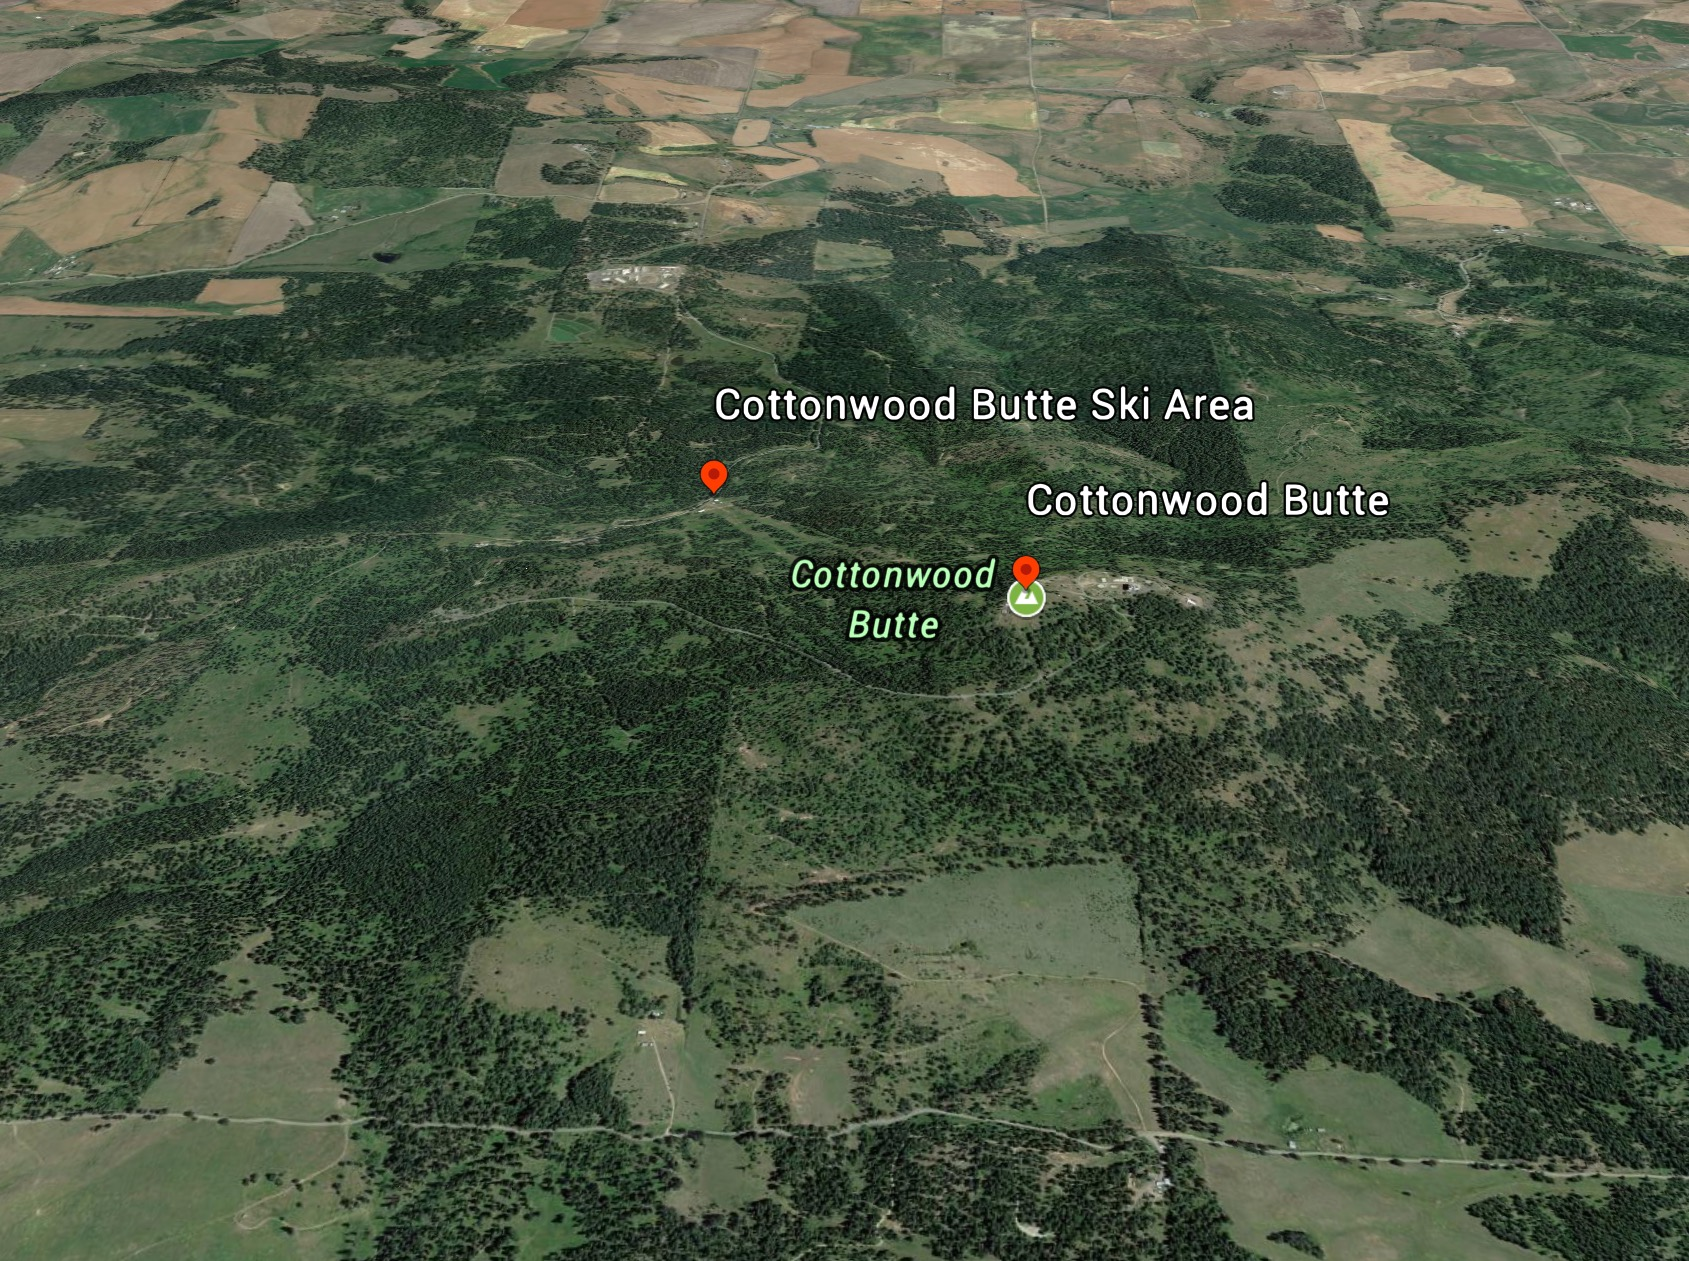 A Google Earth image of Cottonwood Butte.